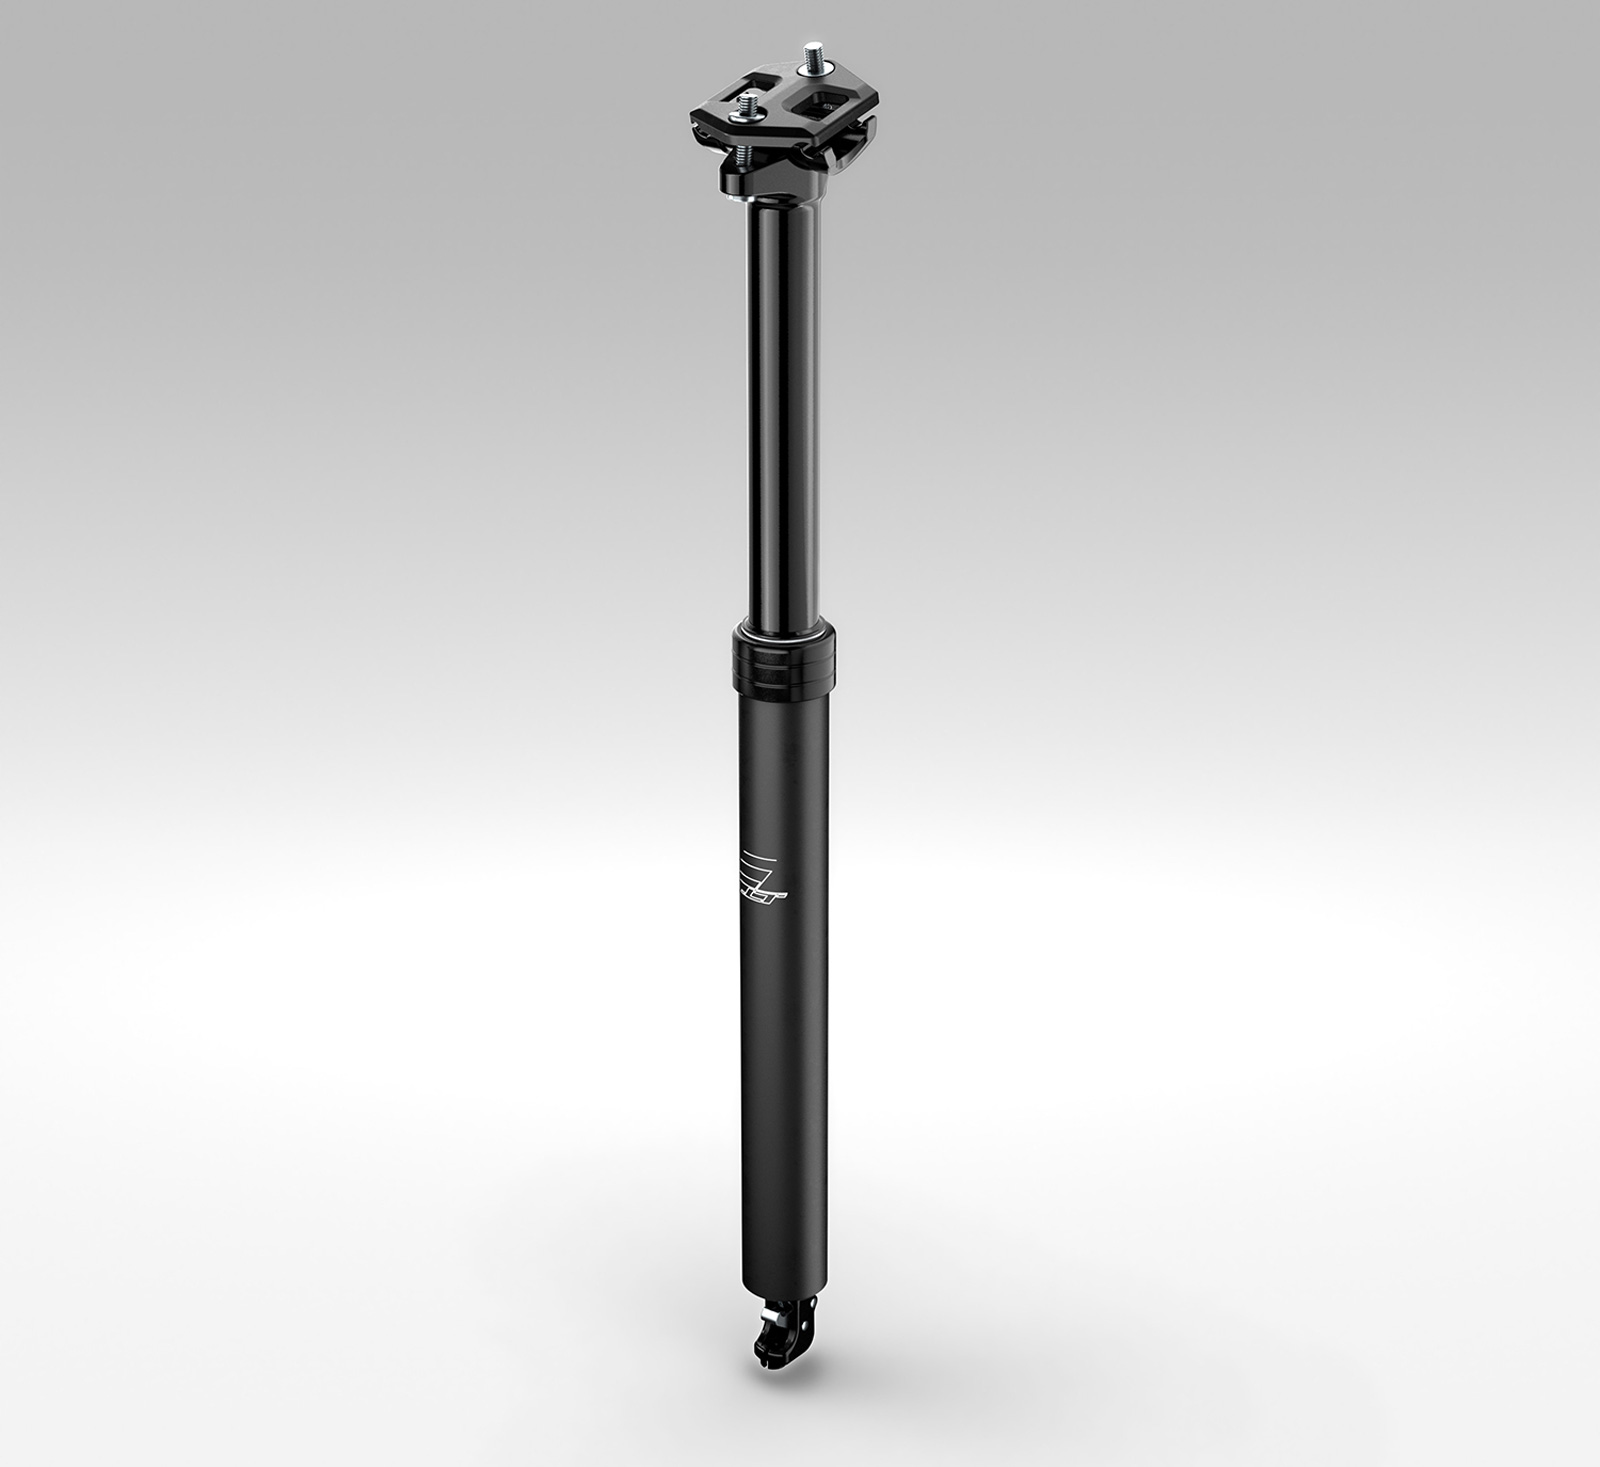 shimano pro lt level dropper seatpost internal cable routing